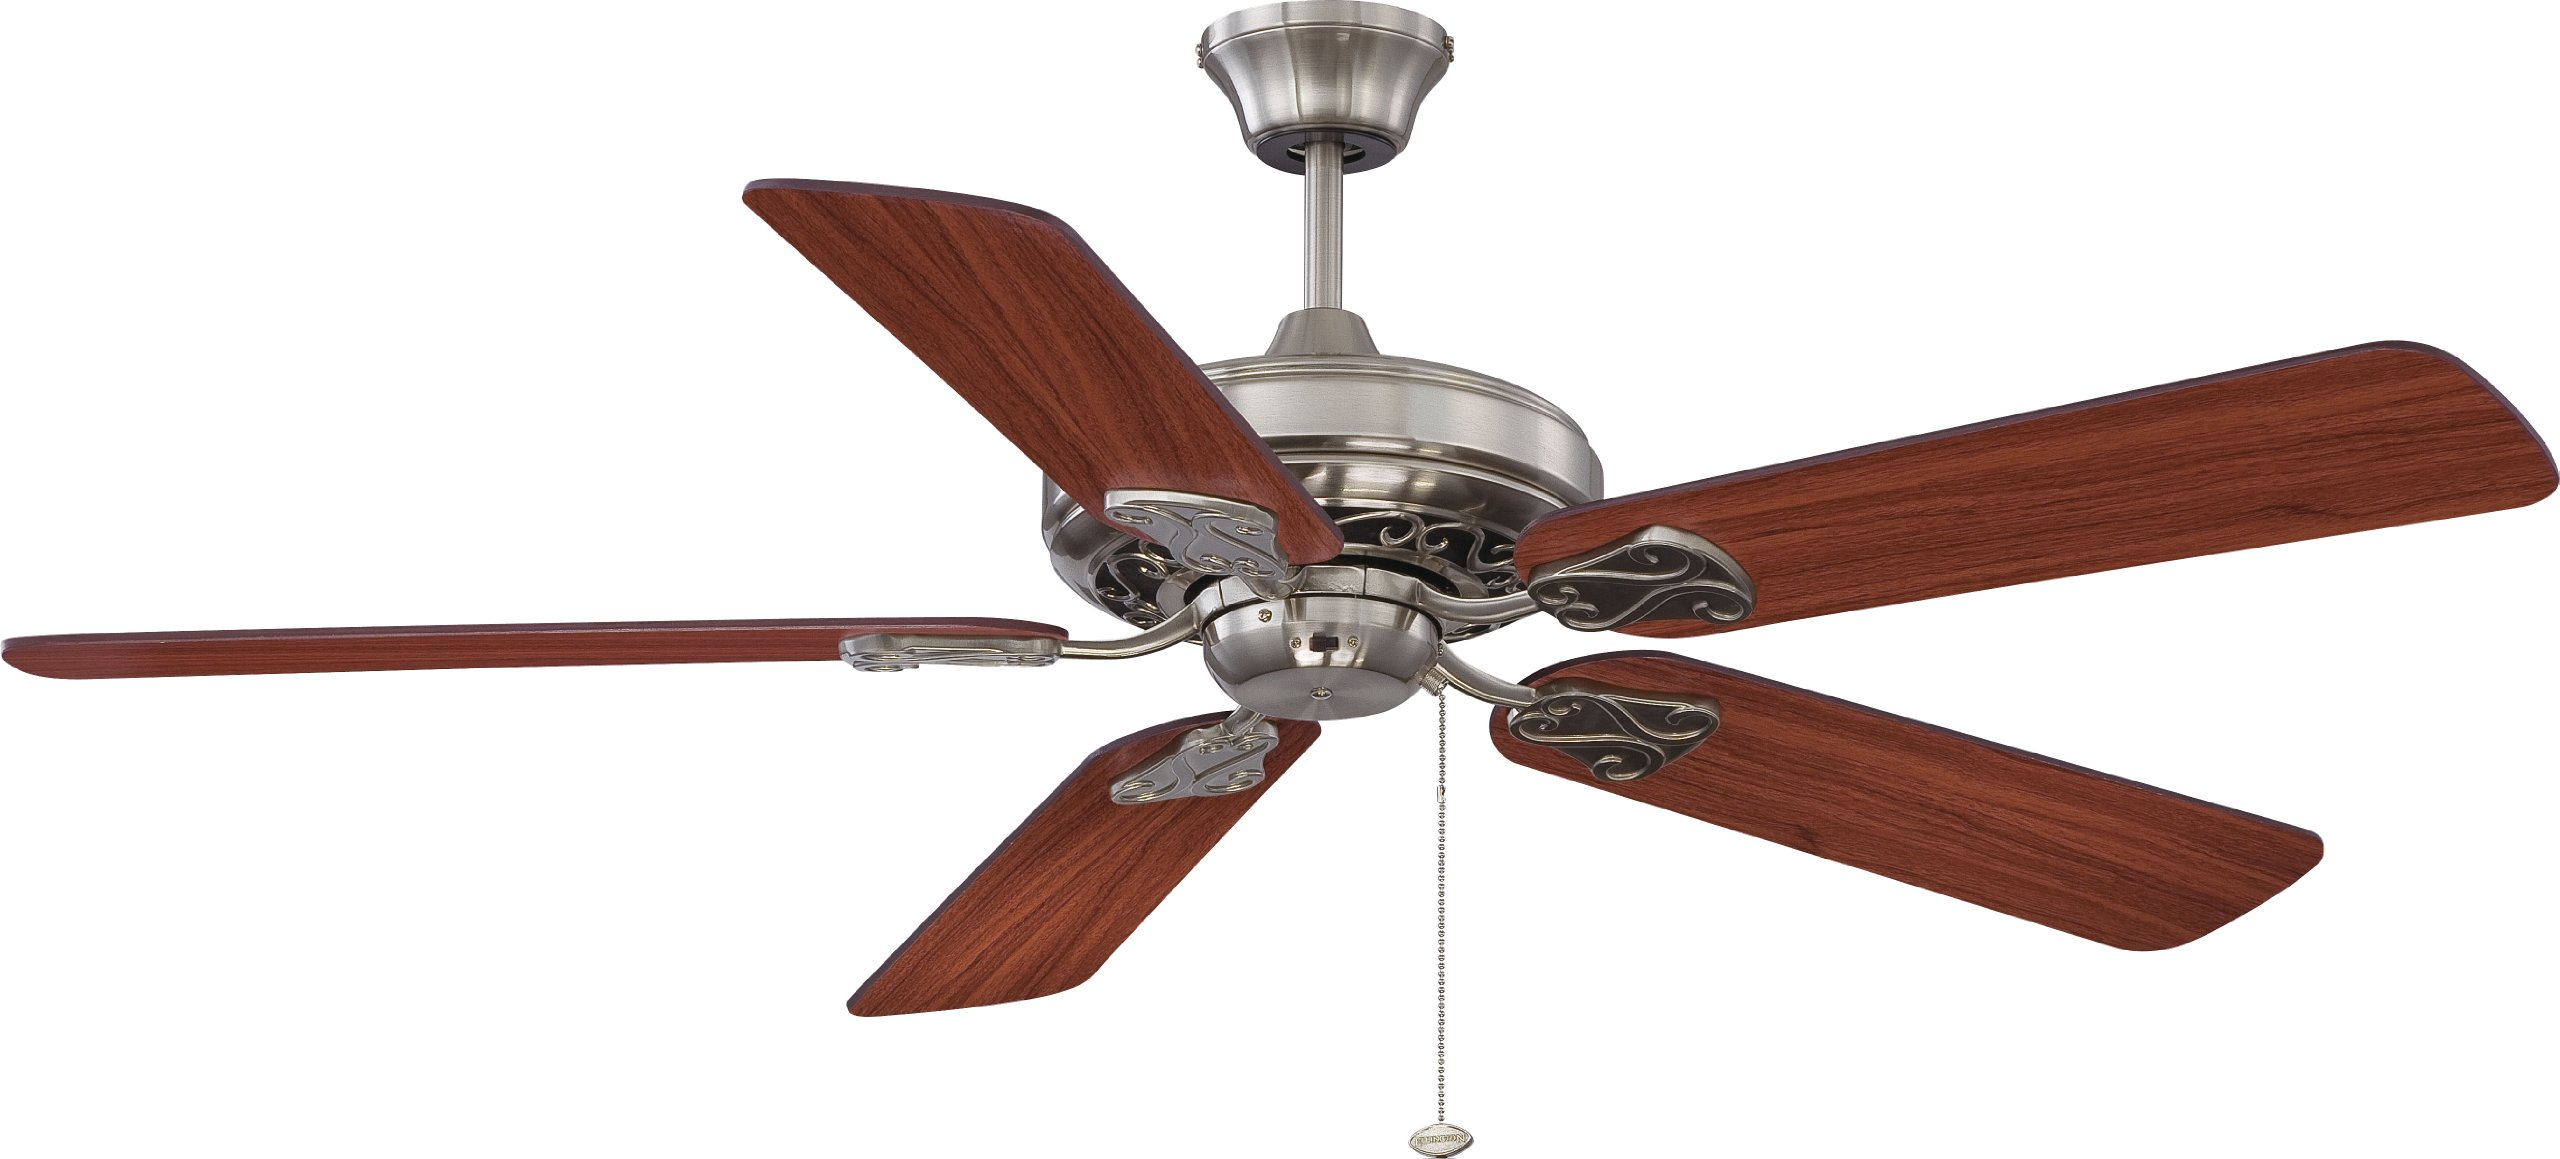 Craftmade MAJ52BNK5 Ceiling Fan with Blades Included, 52'' by Ellington